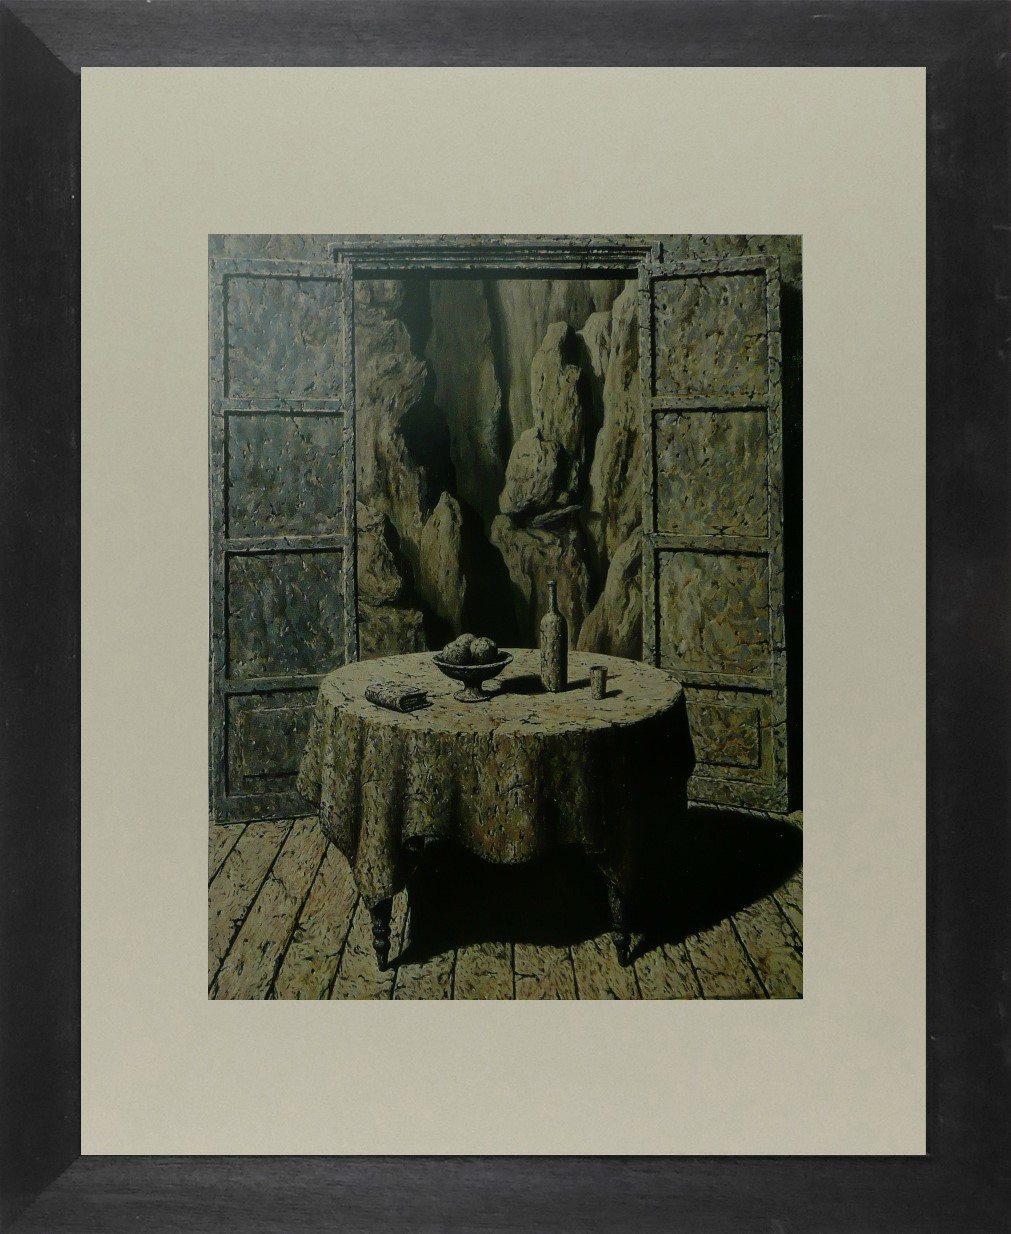 Recollections of Travels - Magritte - Framed Picture 11 x 14